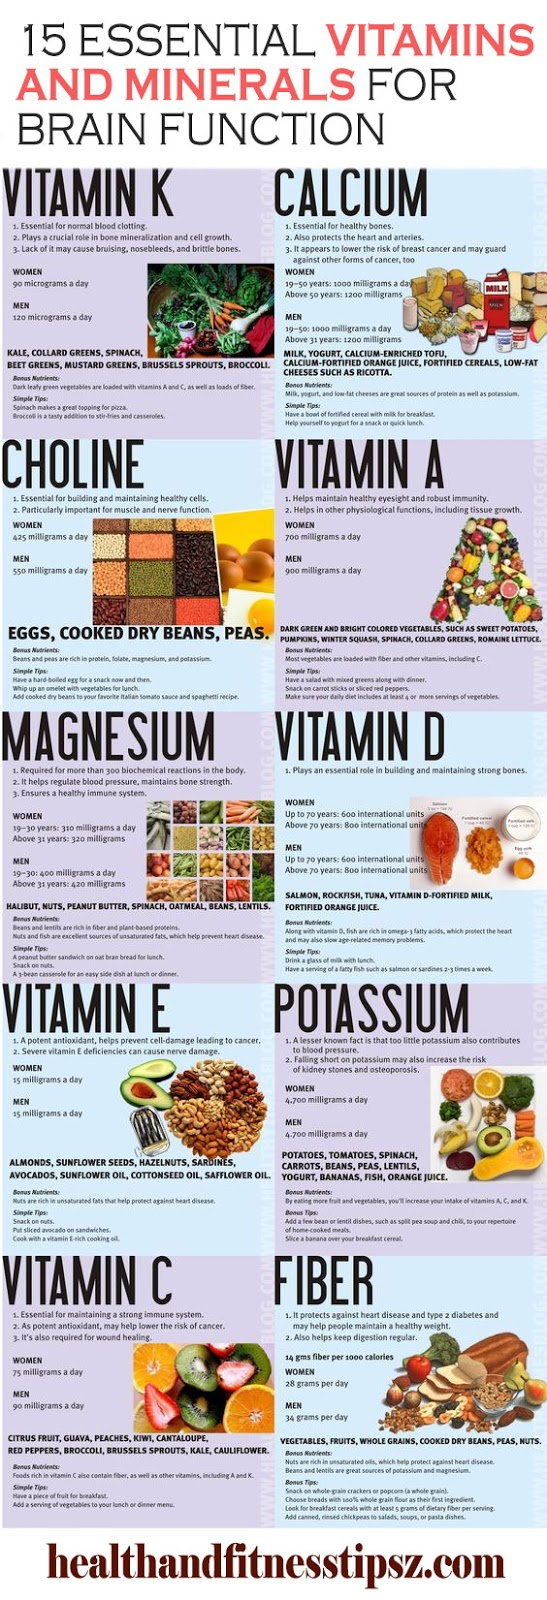 15 Essential Vitamins and Minerals for Brain Function